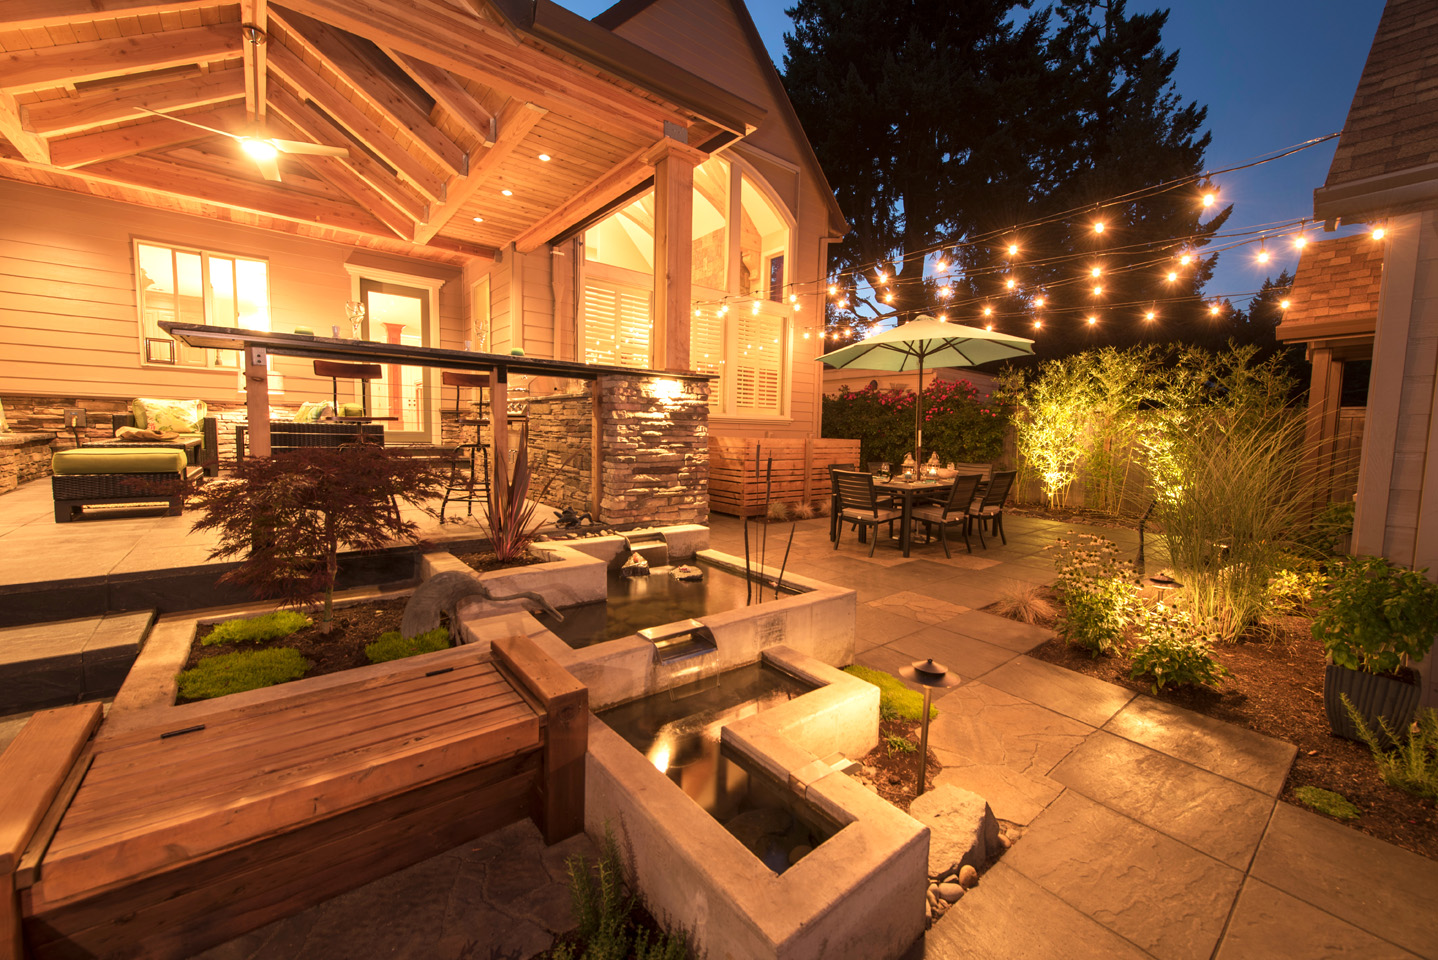 Low Voltage Outdoor Lighting Paradise Restored Landscaping